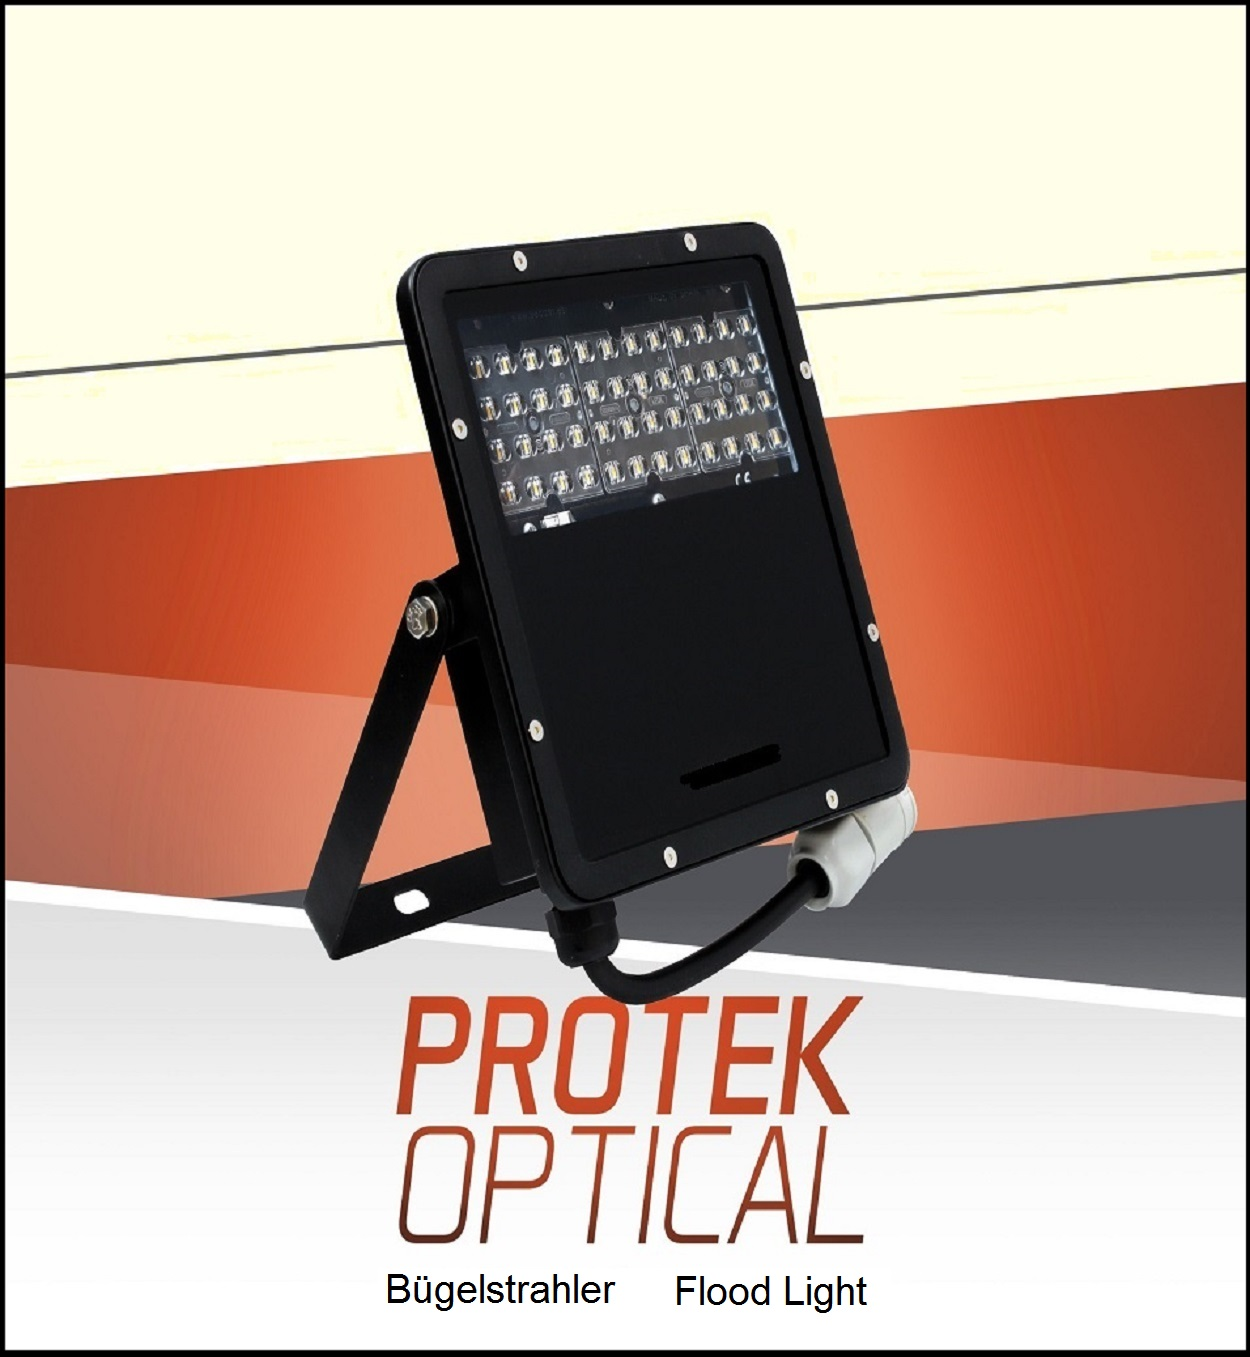 protek optical1